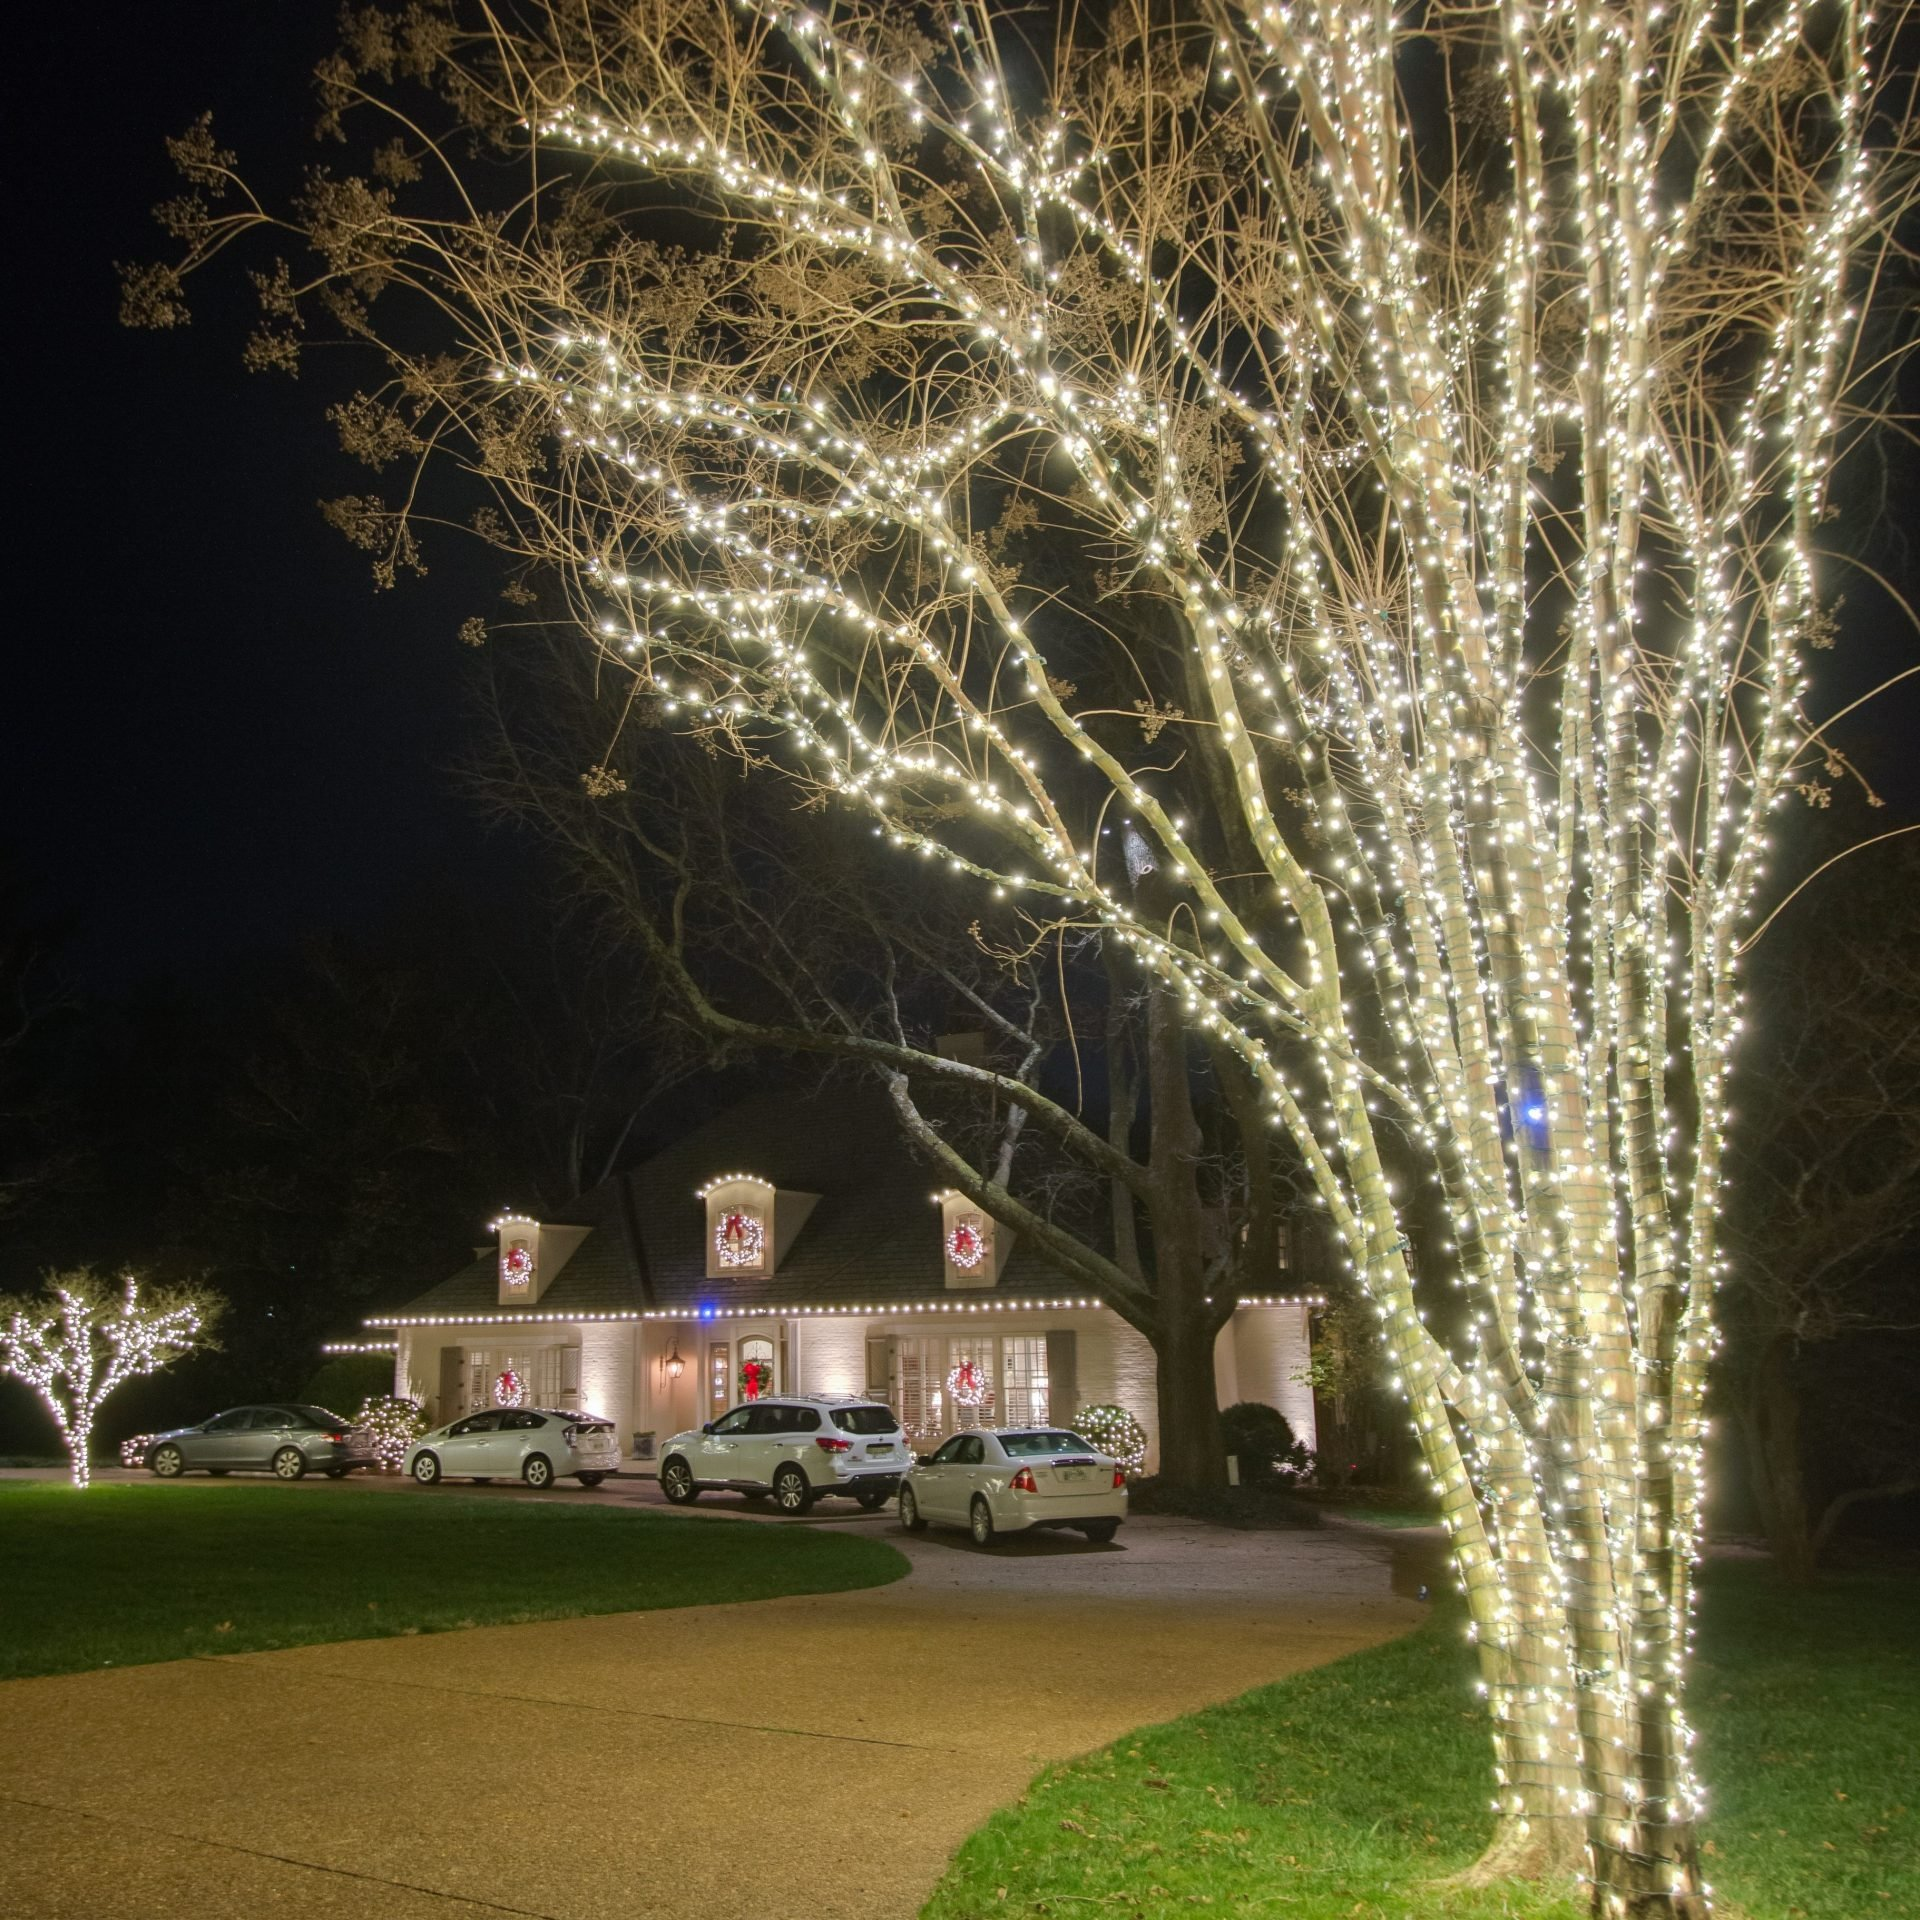 Illuminating Trees Outdoor Christmas Design | Veteran Car Donations